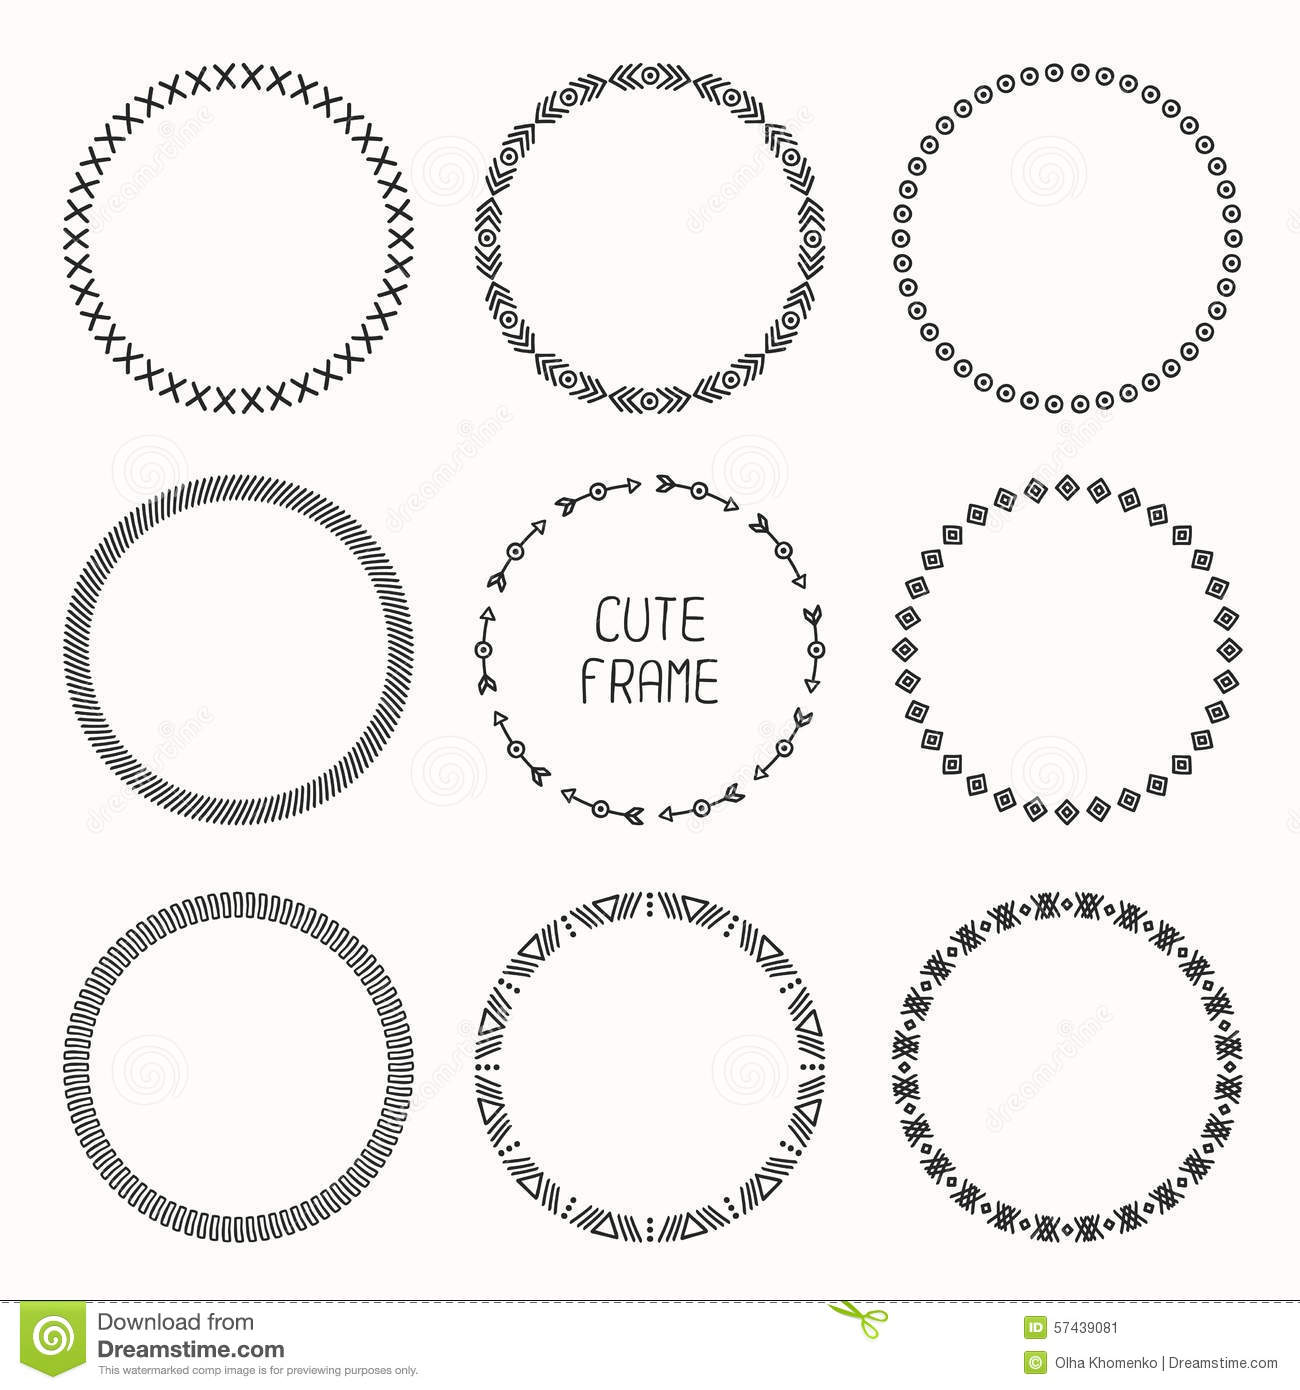 Aztec arrow circle clipart clipart library stock Aztec arrow circle clipart - ClipartFest clipart library stock